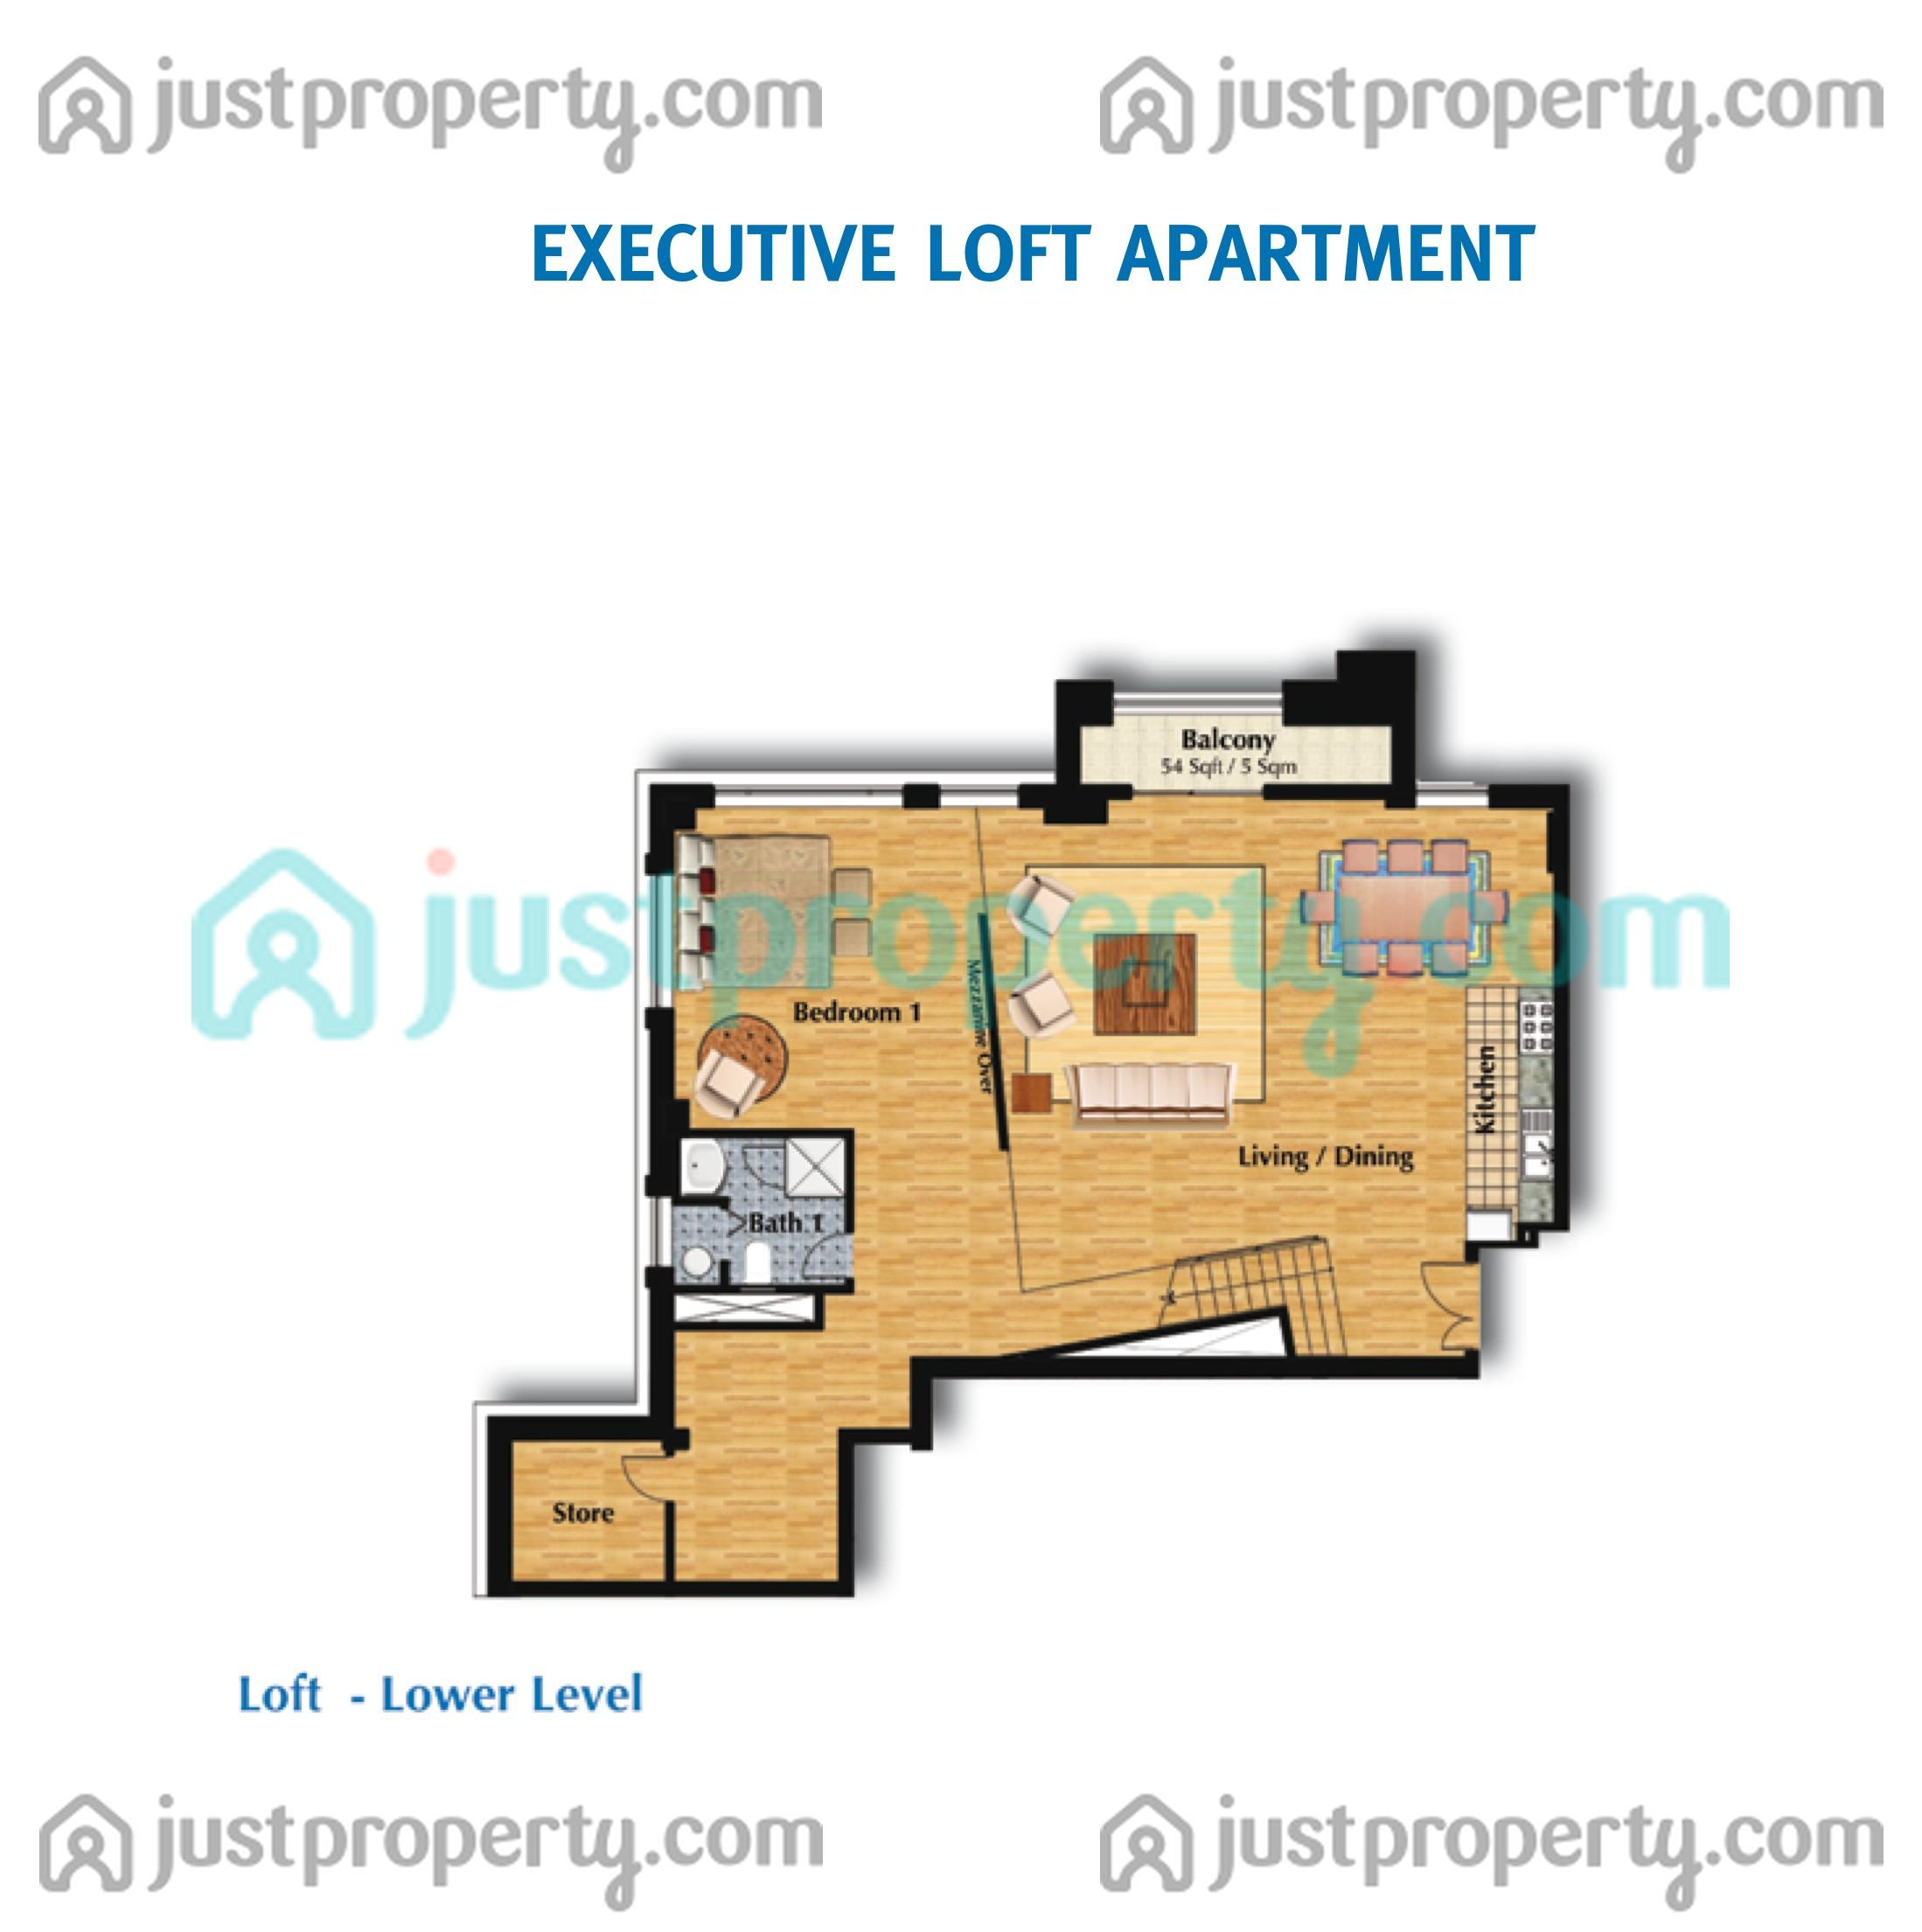 Executive towers typical floor plans floor plans Executive floor plans